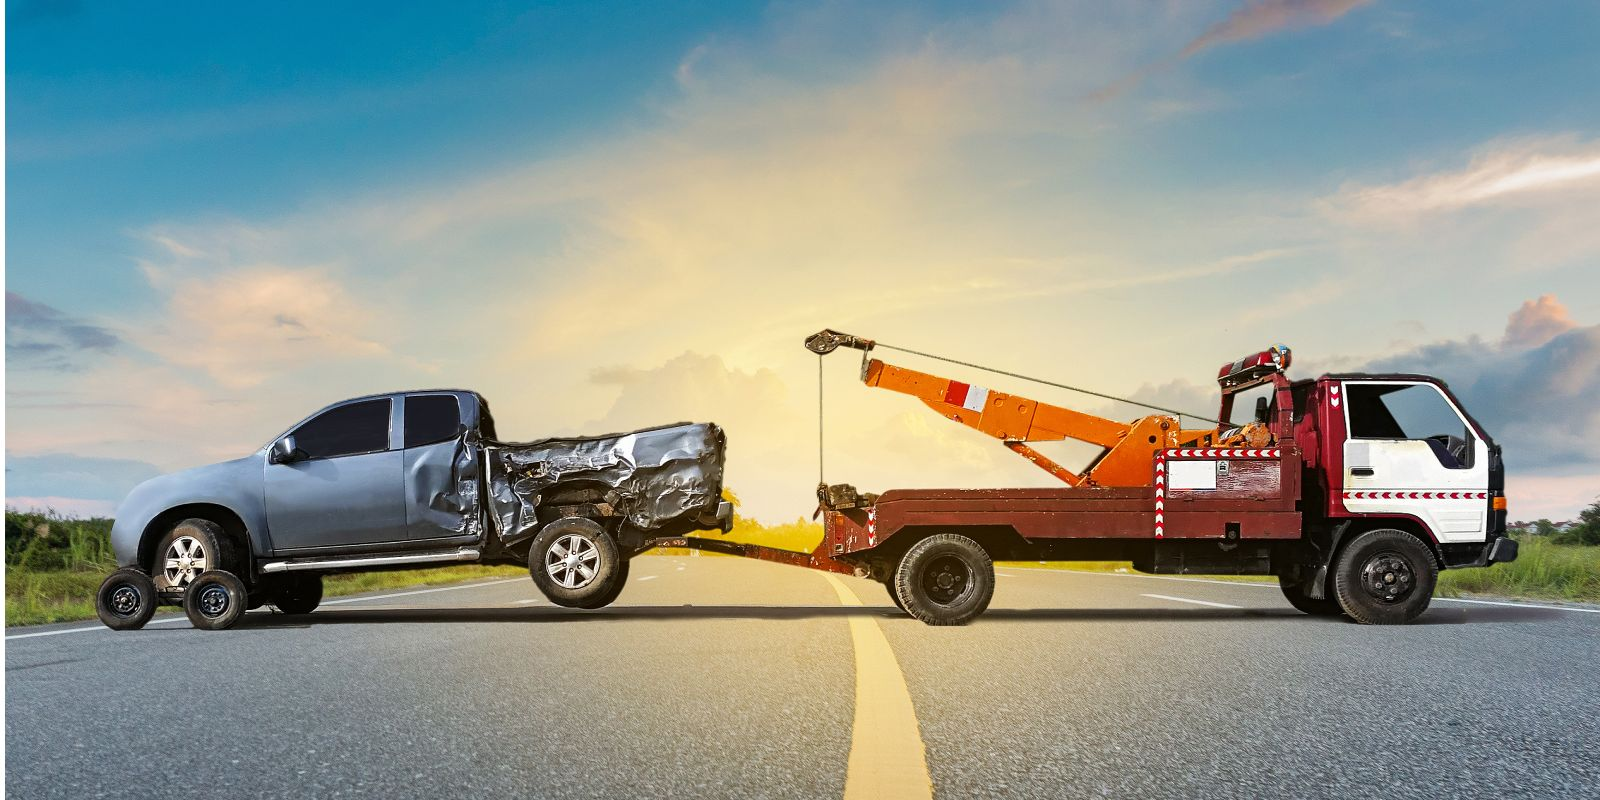 Important Information to share when calling for Towing Service